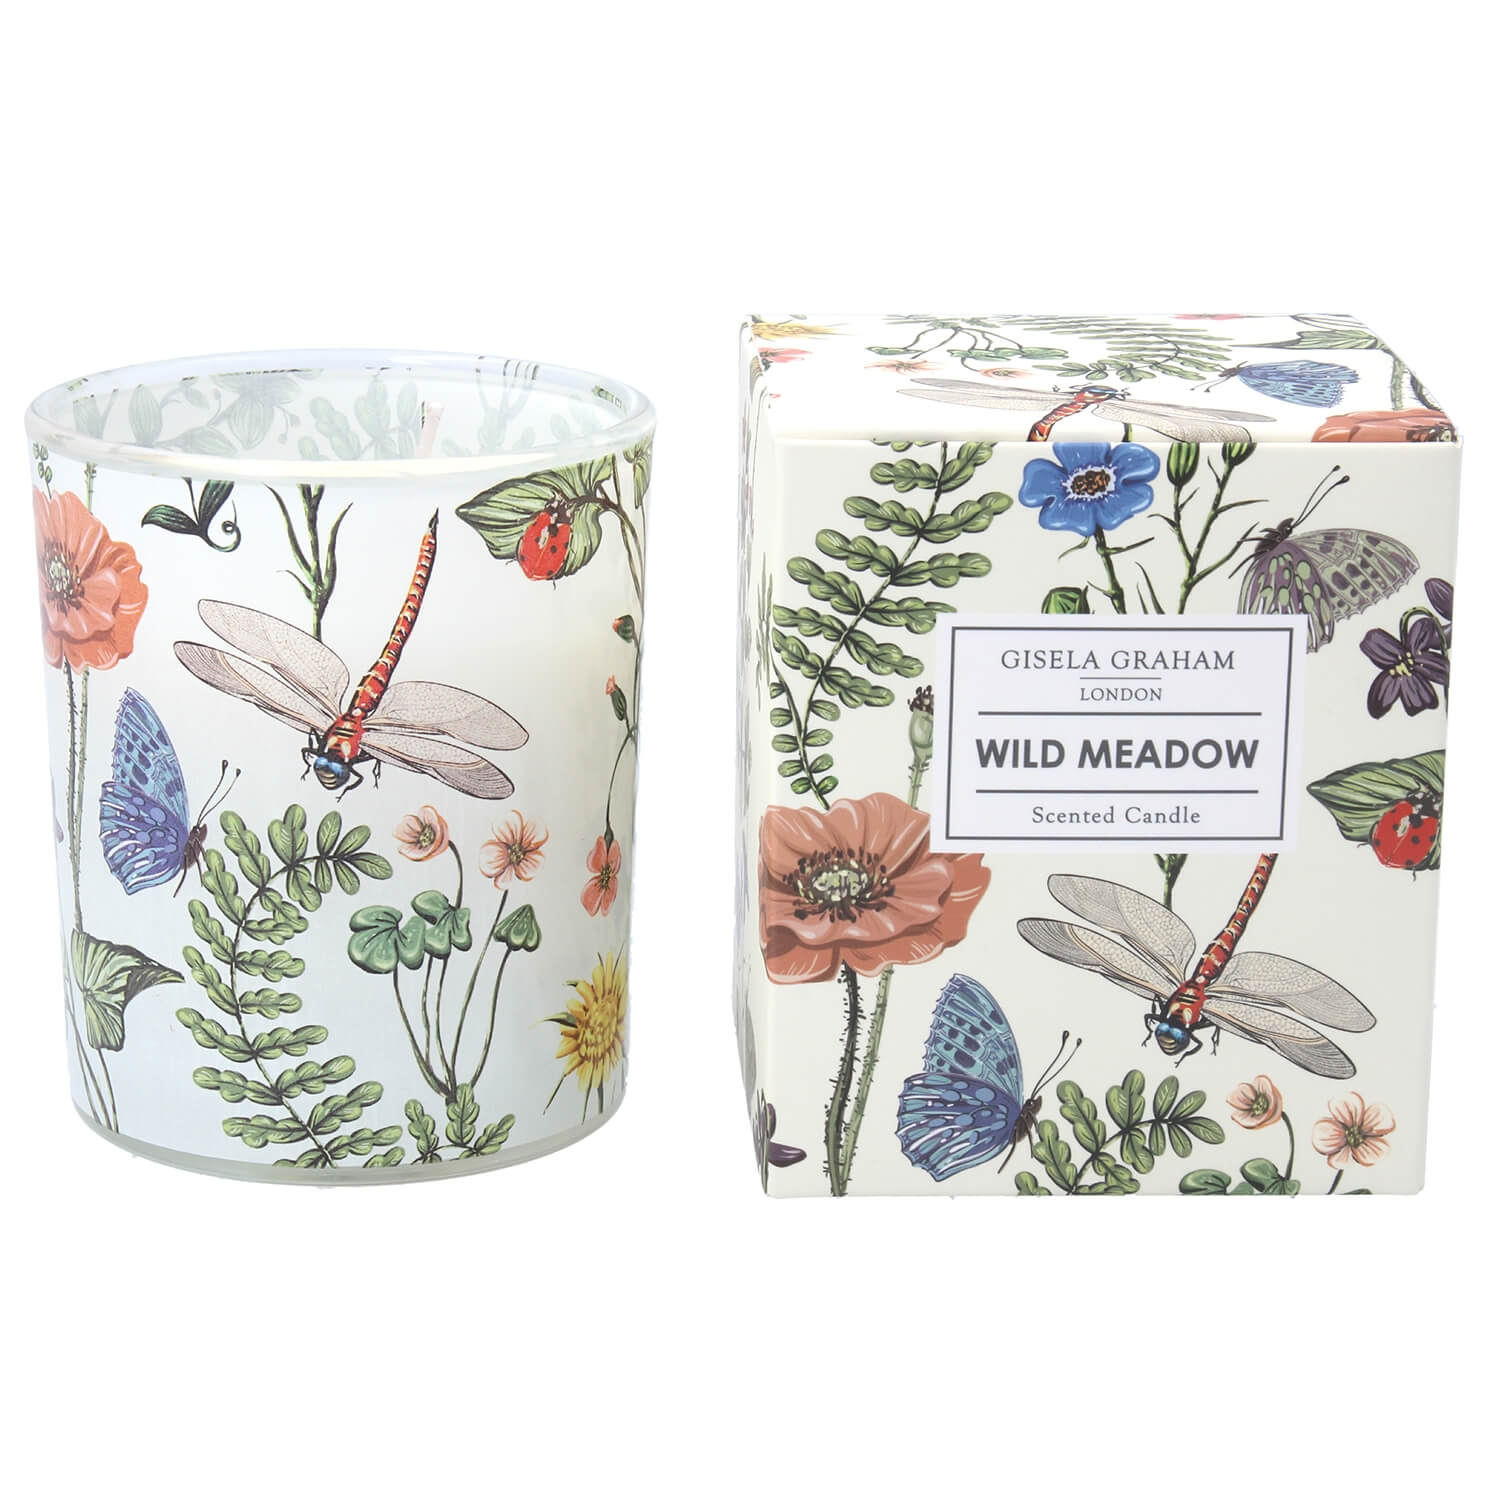 Image of Gisela Graham Flora Fauna Scented Candle Pot, White